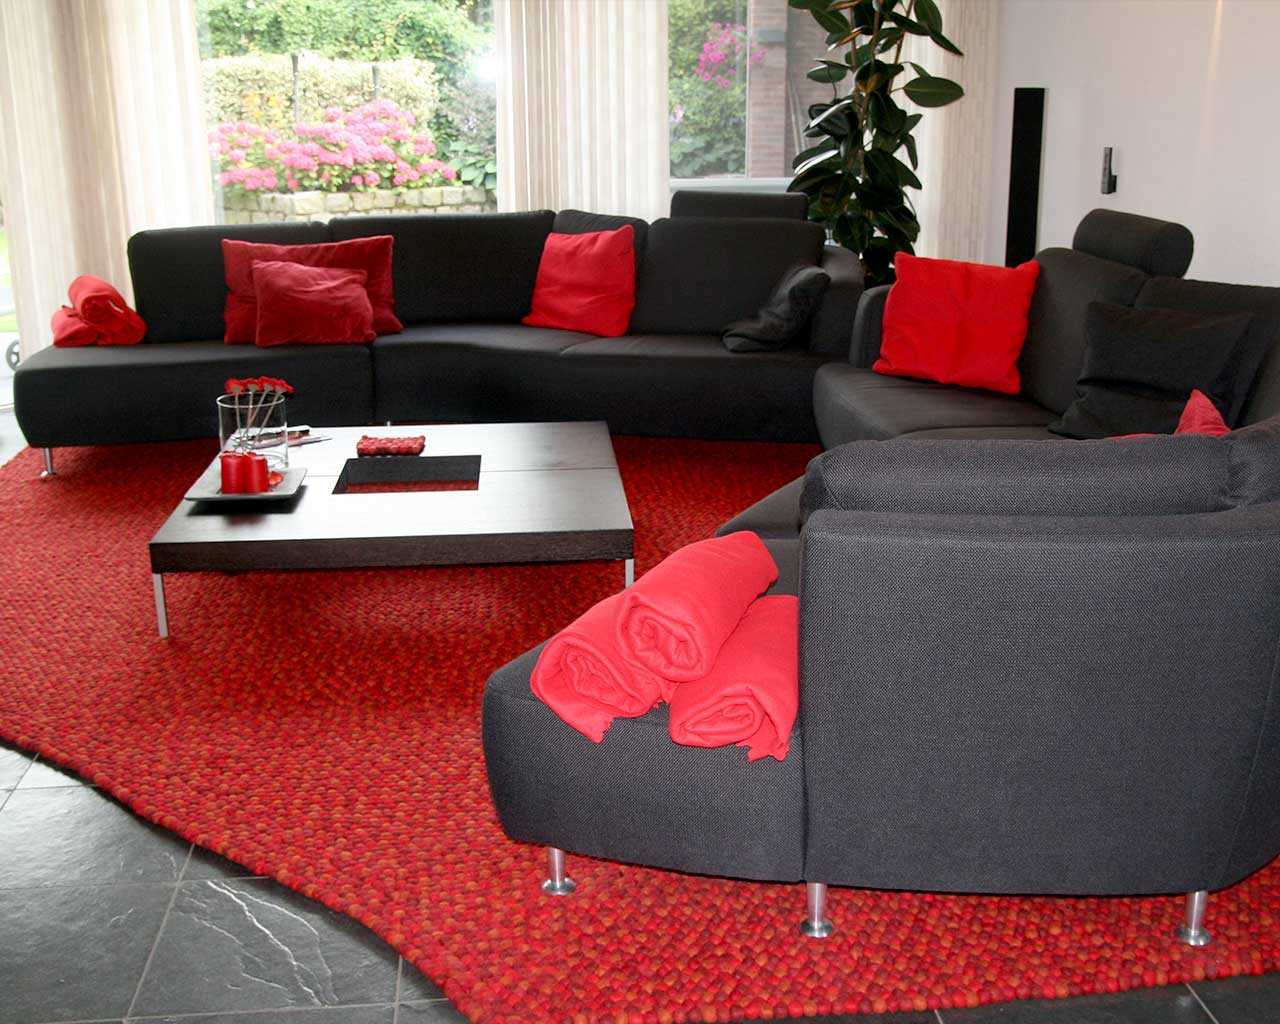 large carpet felt red living room